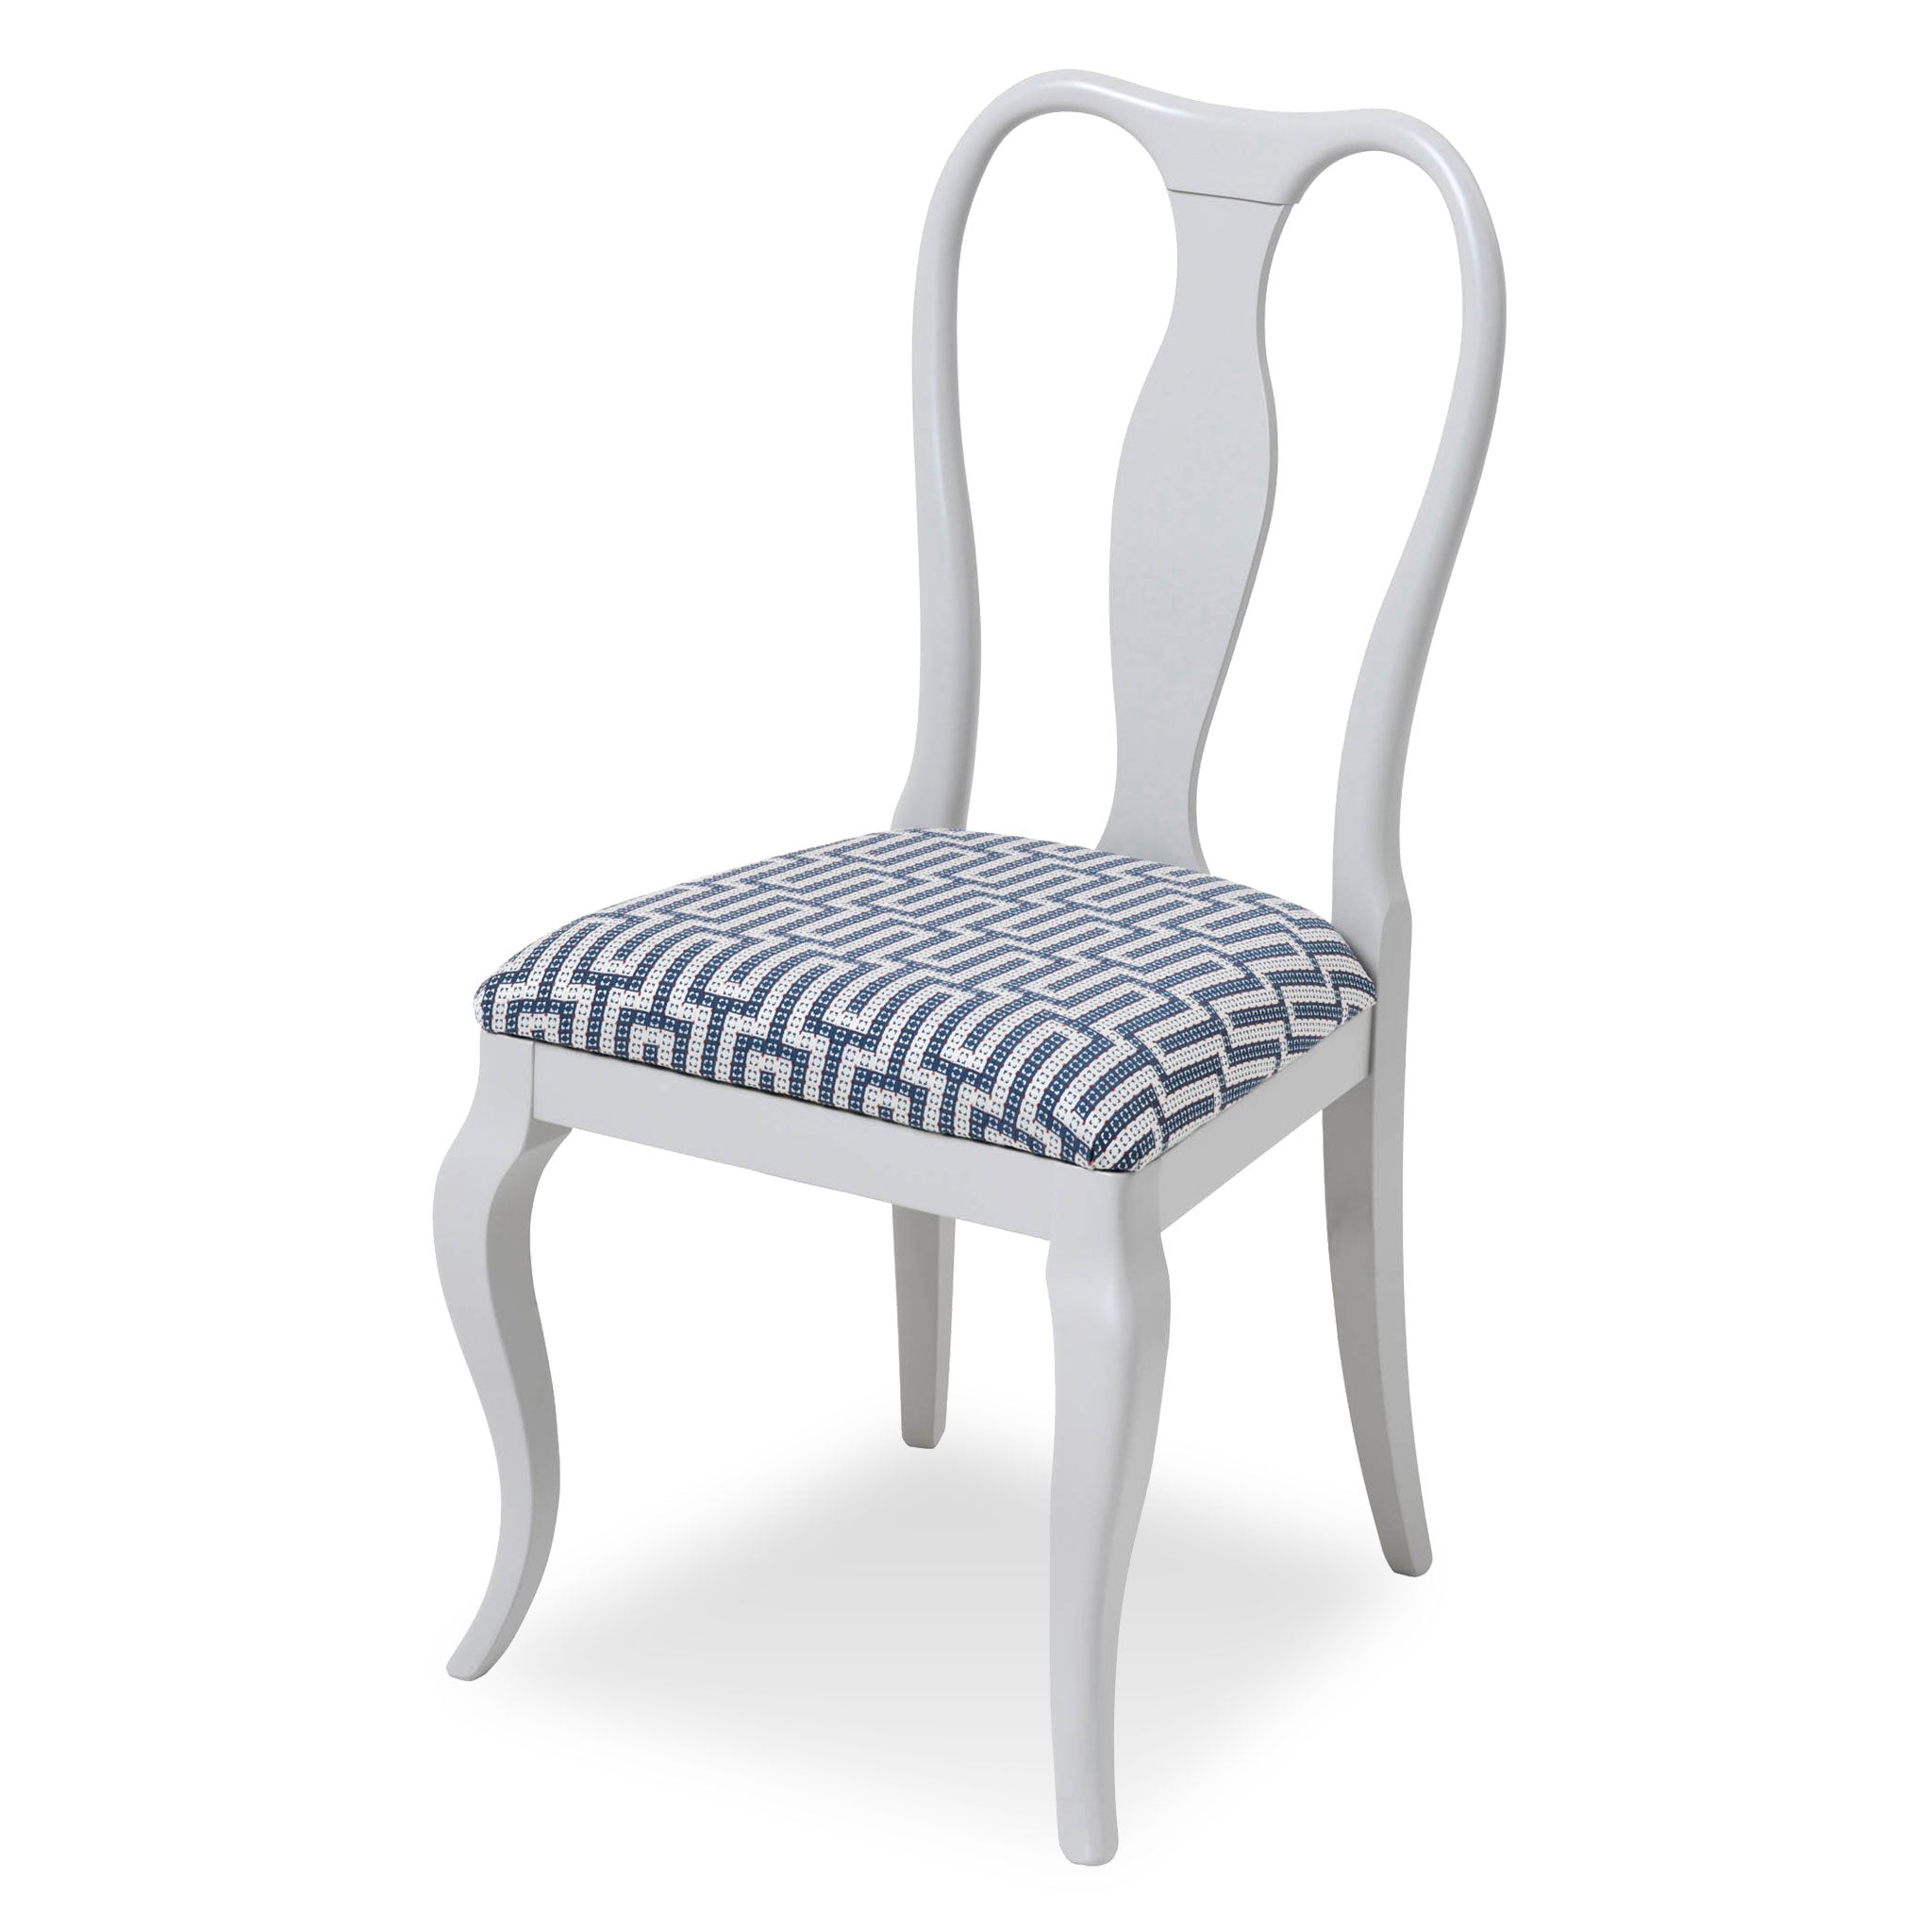 The Marco Side Chair